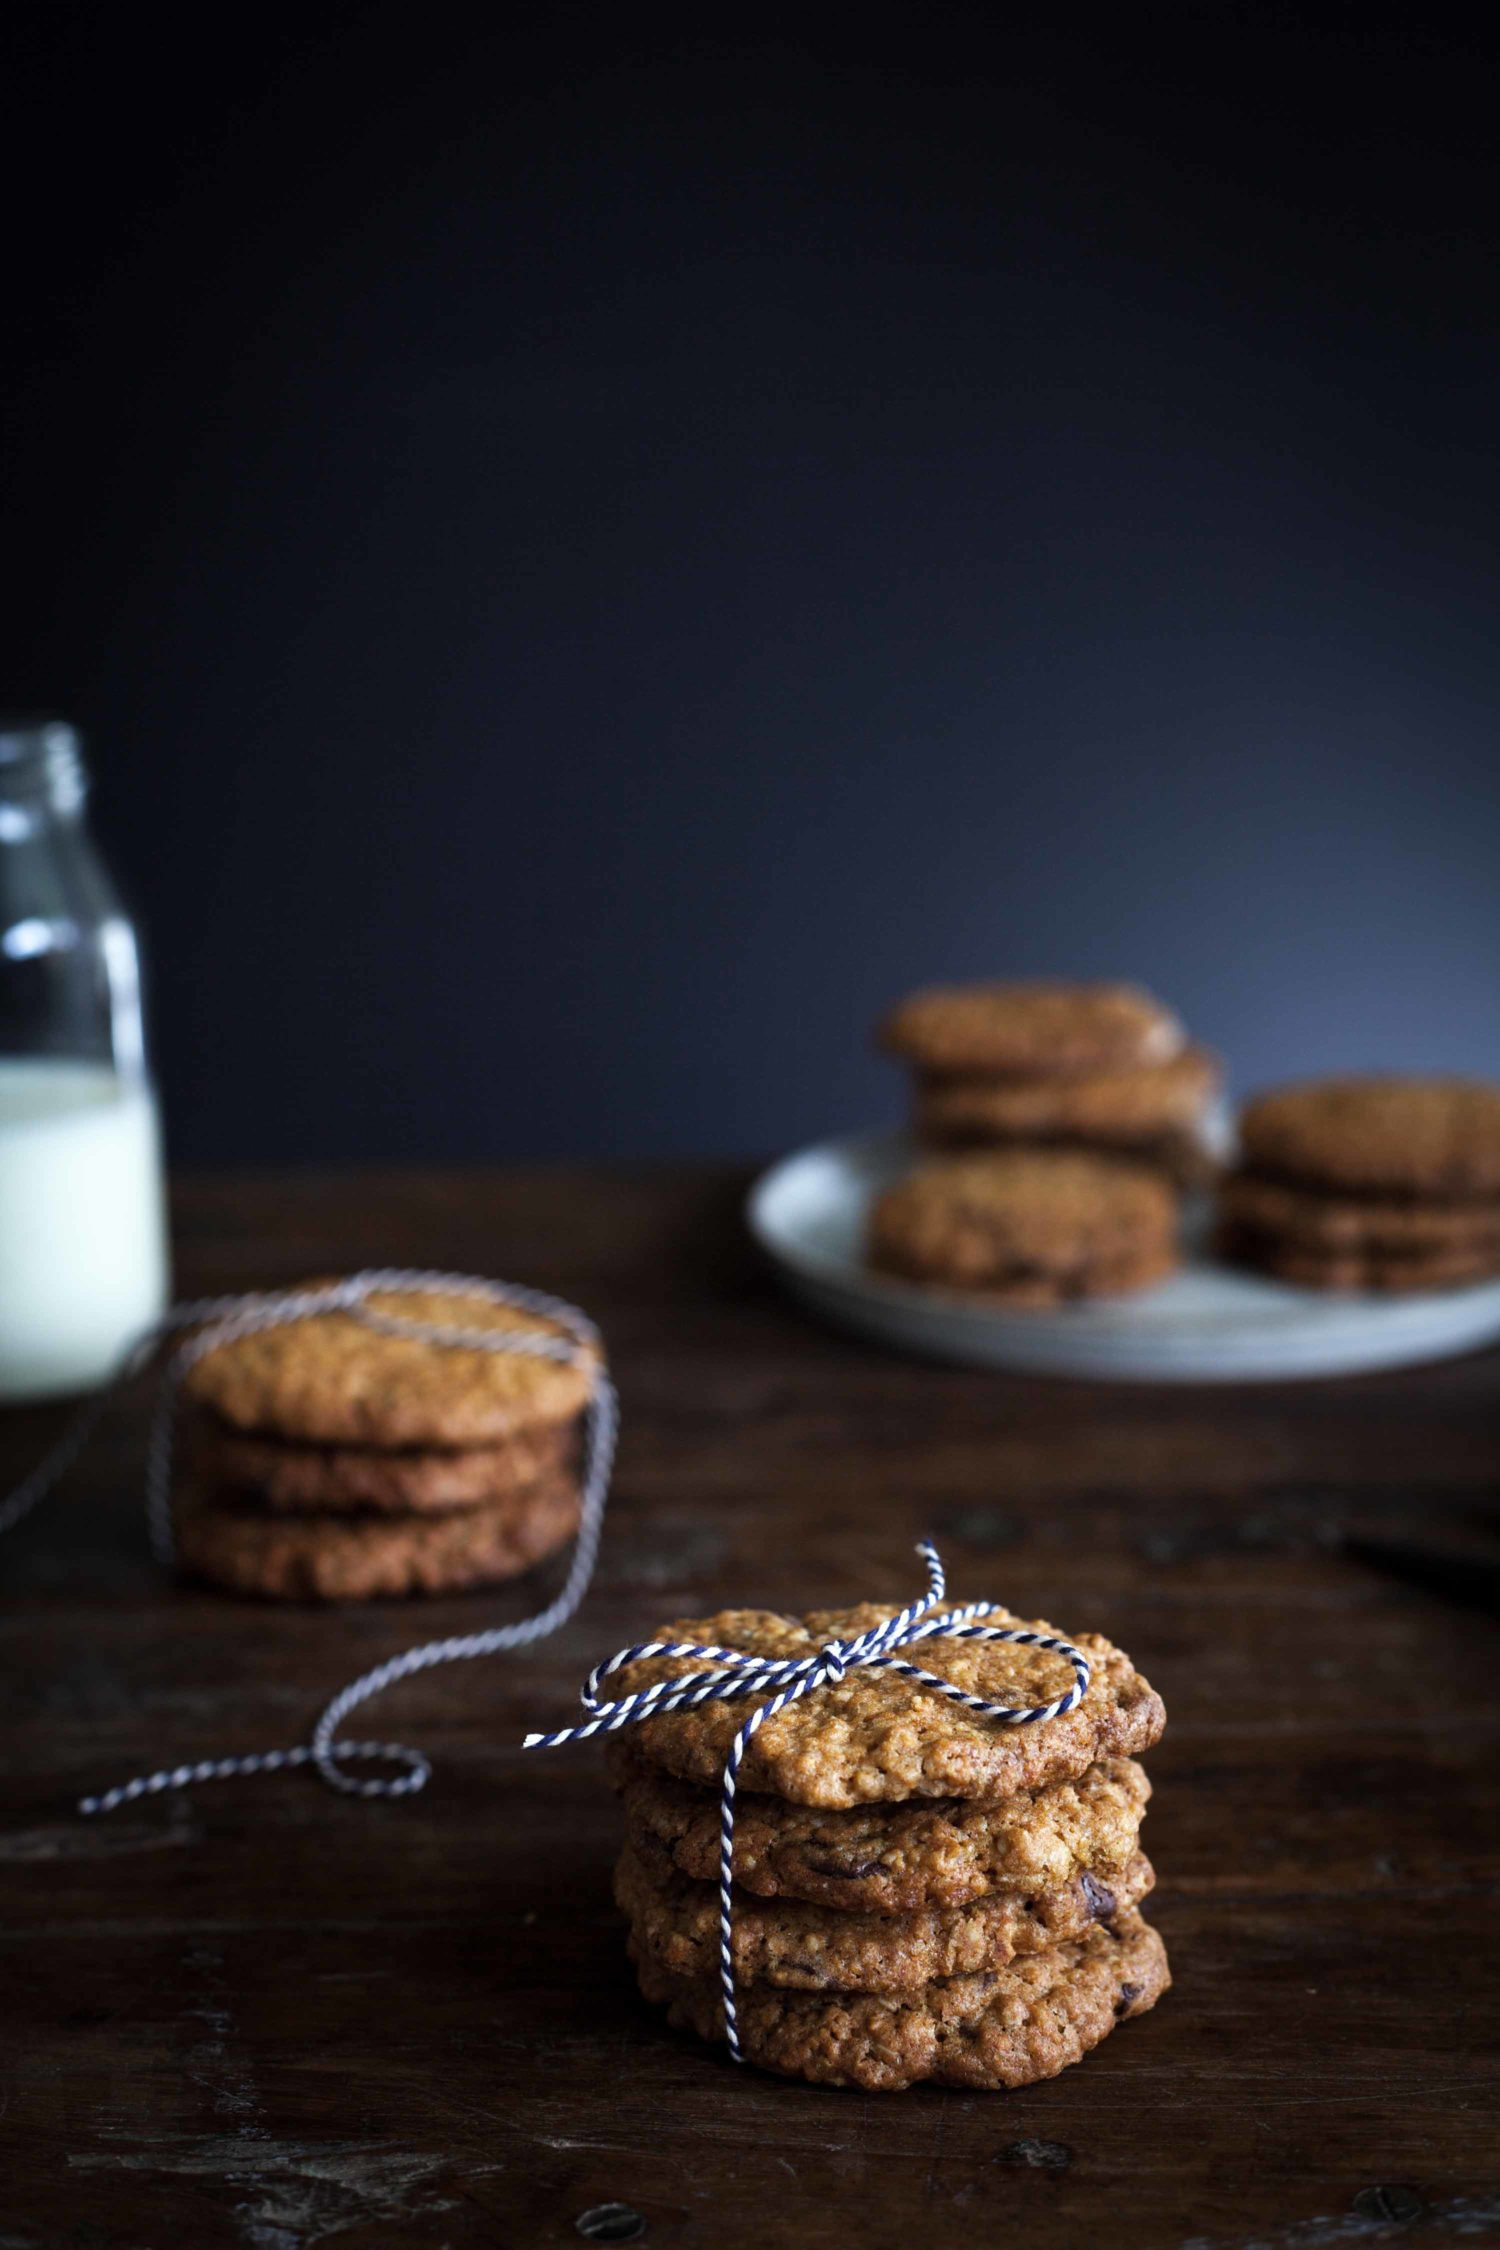 Oatmeal_chocolate_chip_cookies_ShareLoveNotSecrets_MarleenVisser_2.jpg